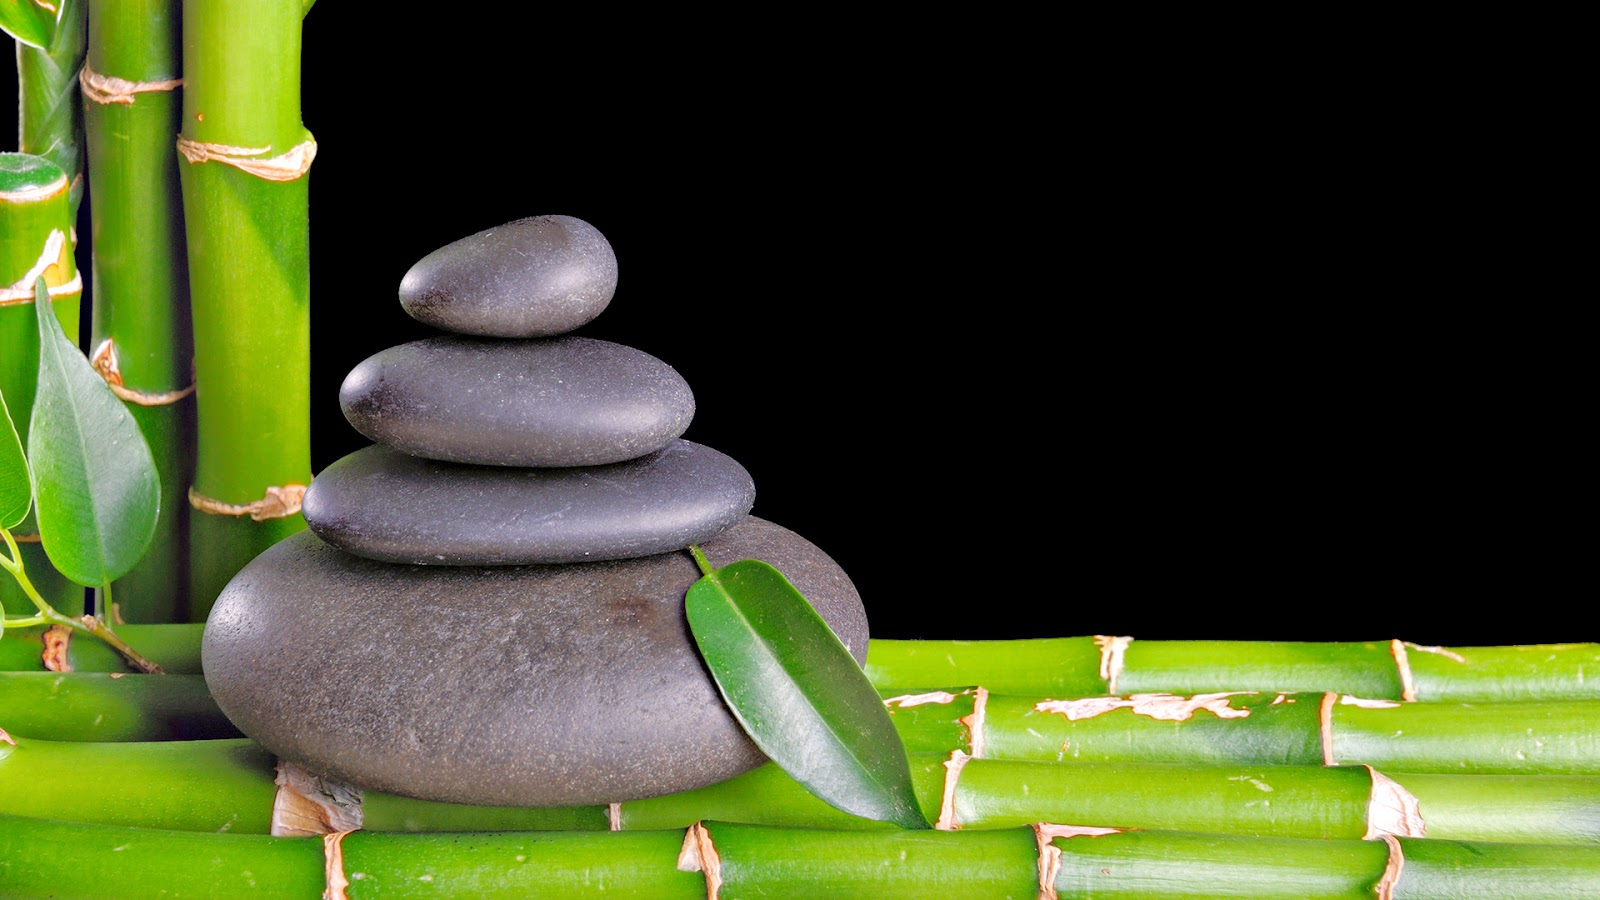 Chinese Zen meditation pictures 1080p Full HD widescreen Wallpapers